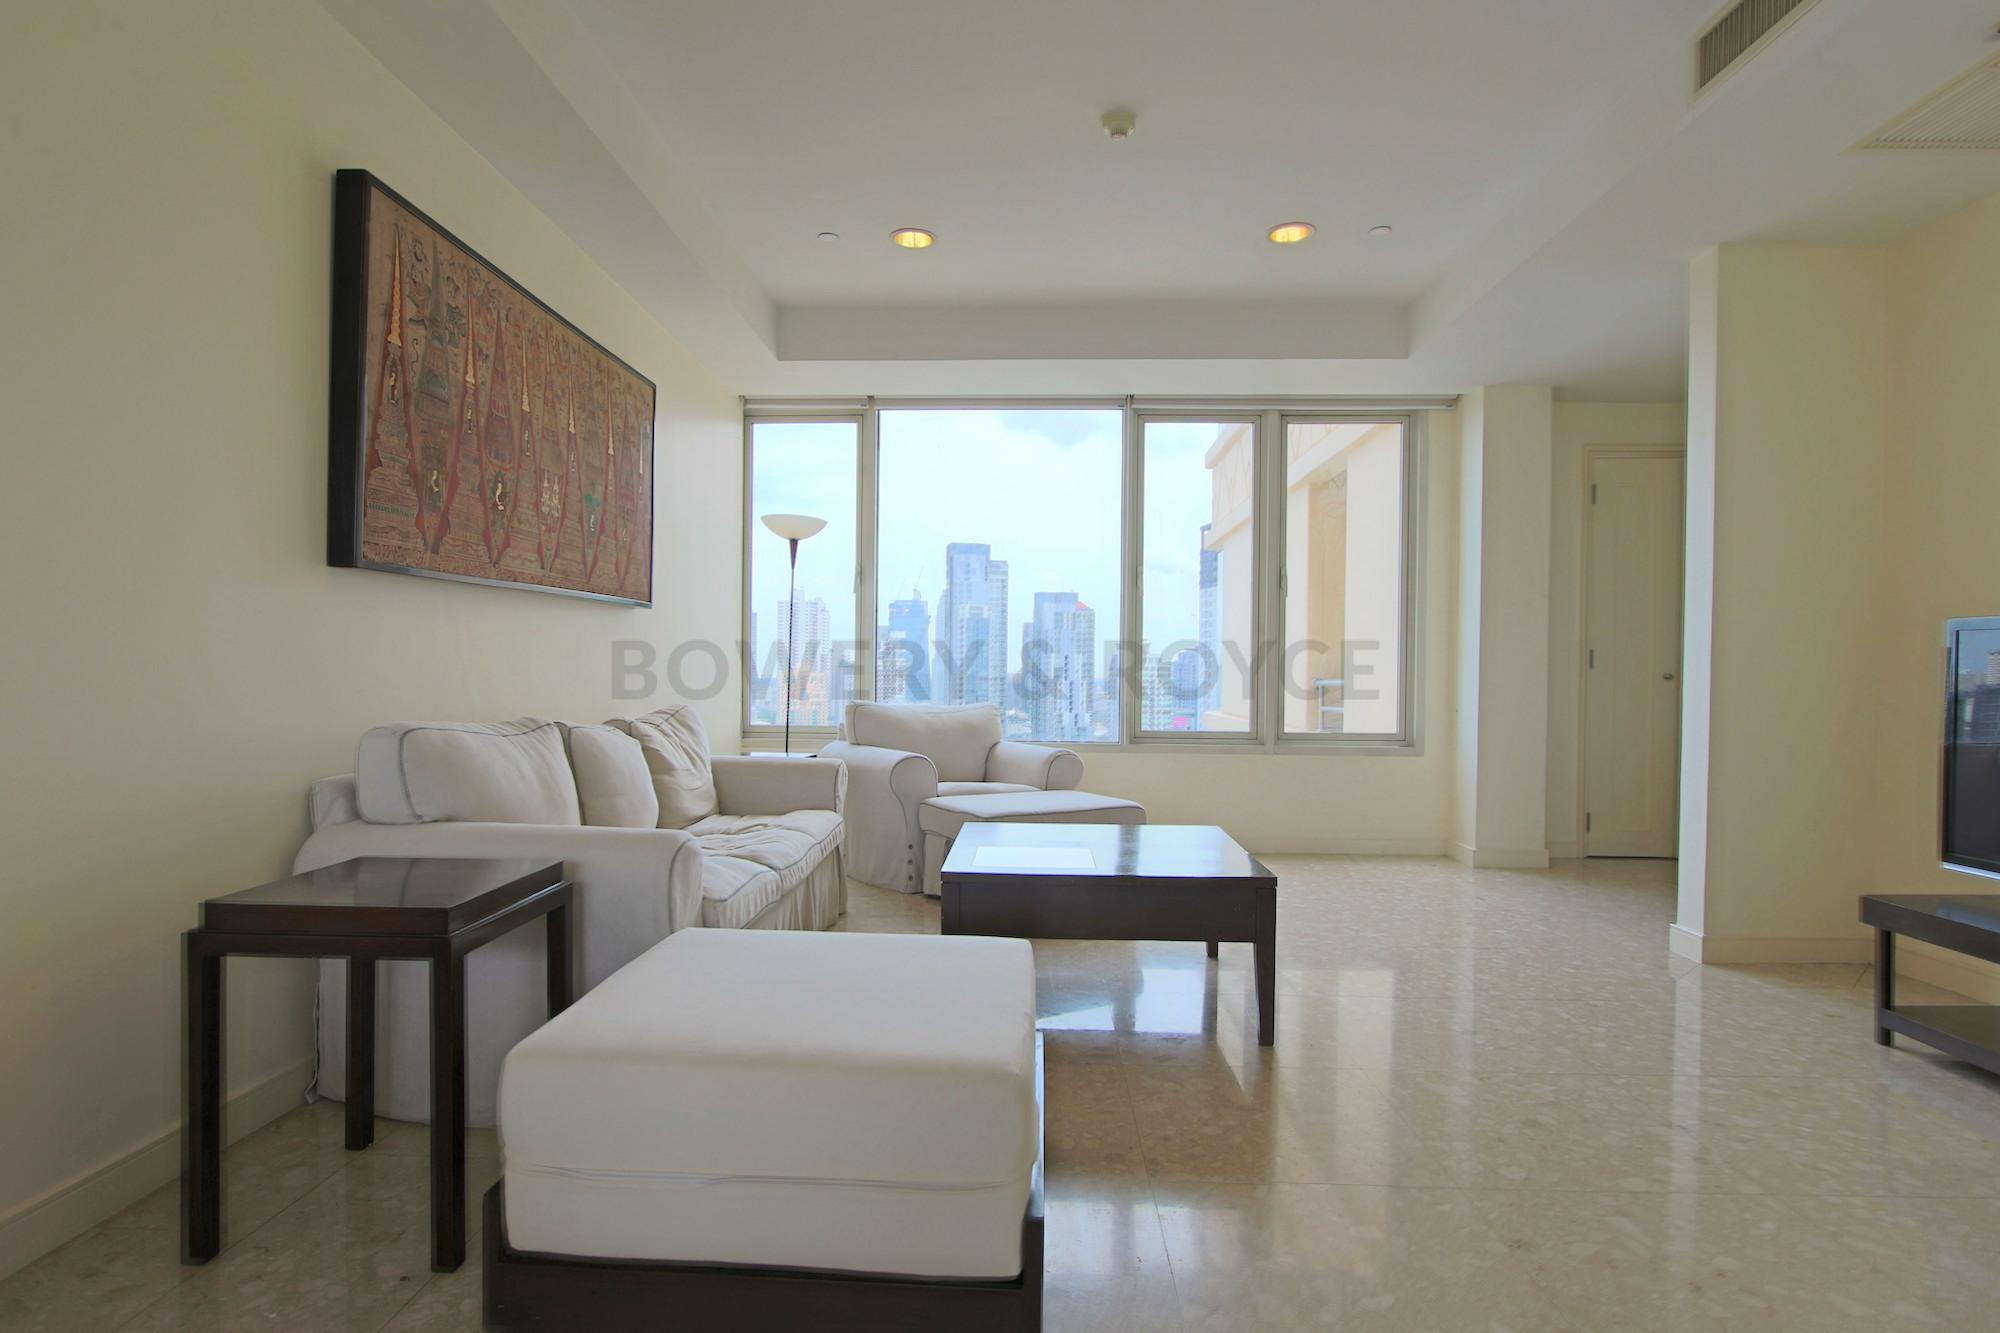 Great-Location-Three-Bedroom-Condo-for-Rent-in-Thong-Lor-3